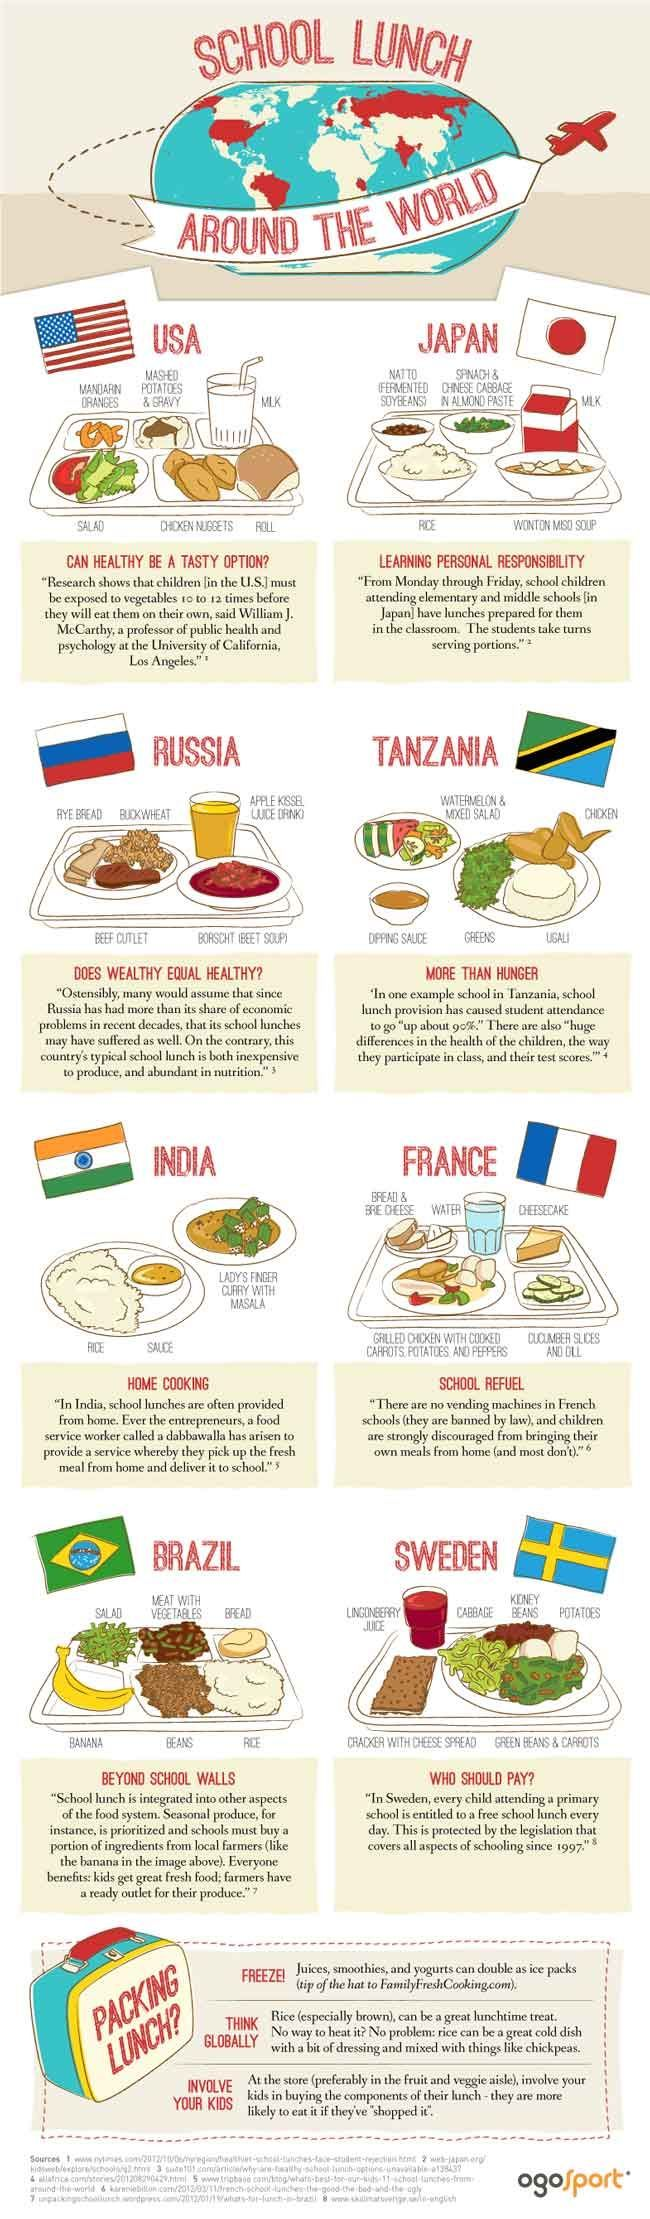 School lunches from around the world by ogosport for Fun facts about countries around the world